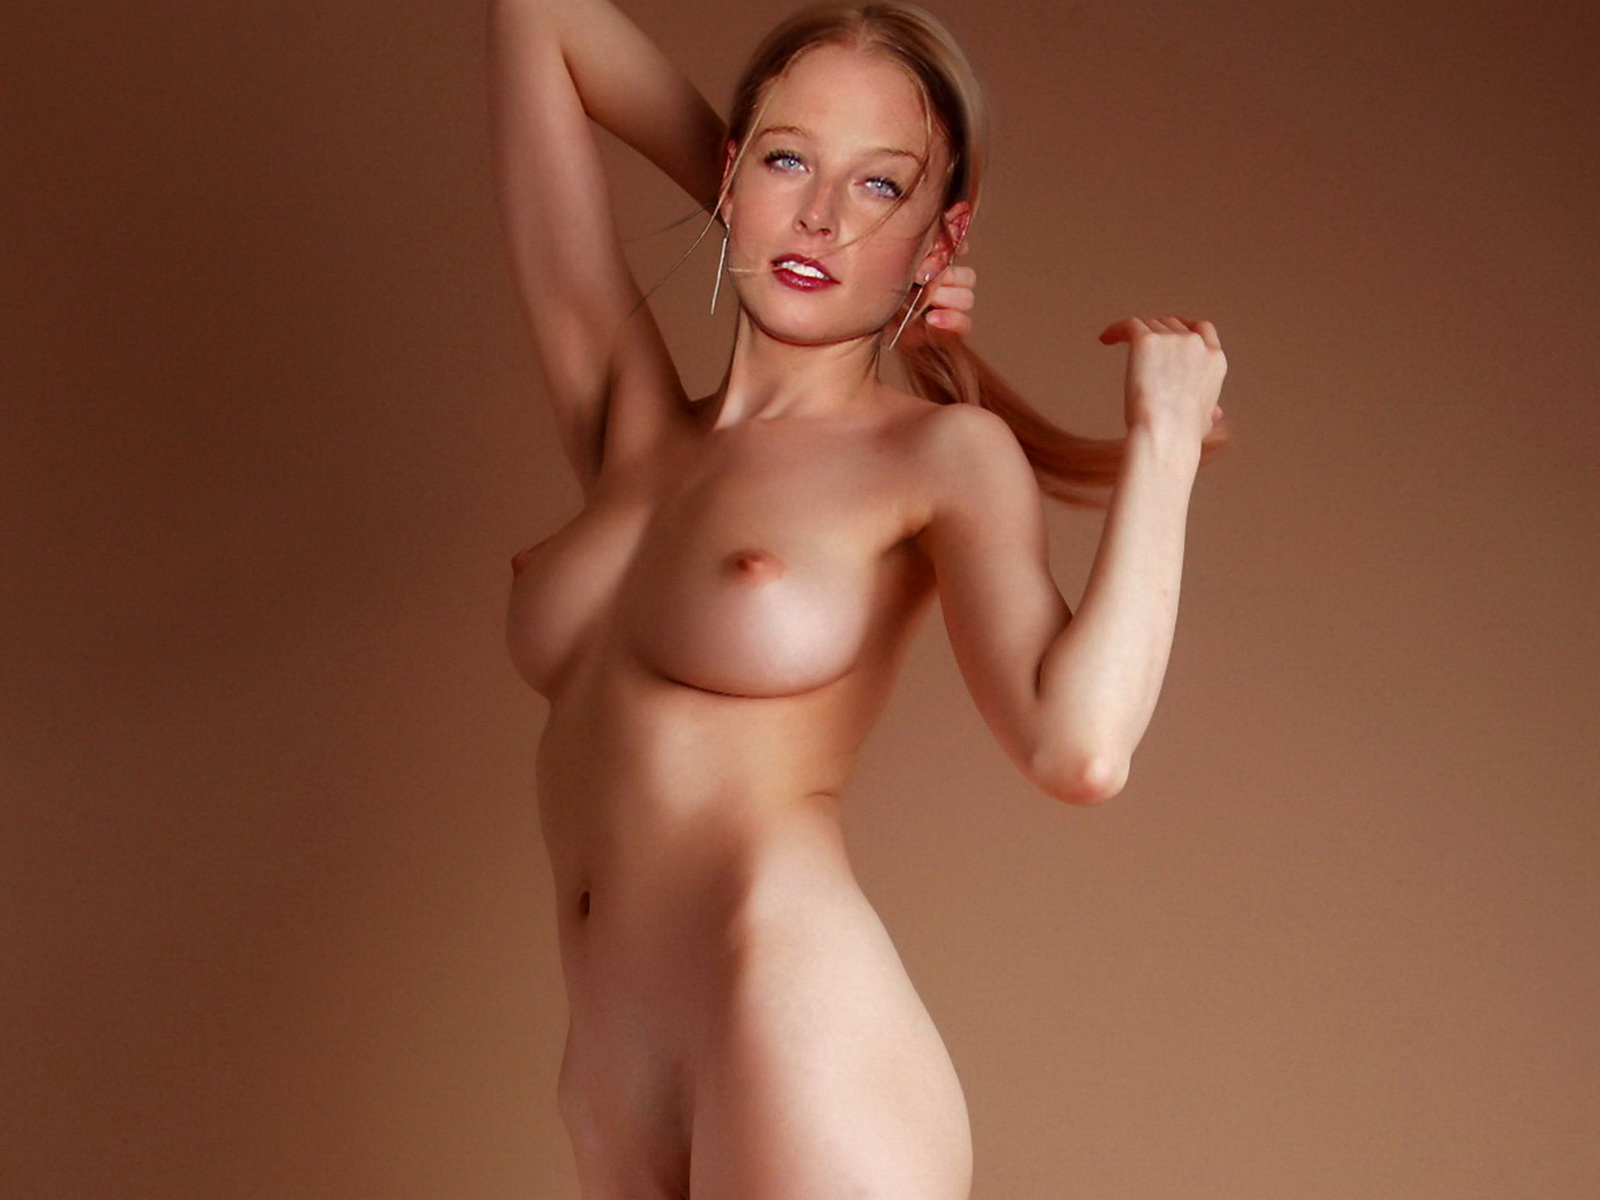 Sorry, rachel nichols nude fakes you abstract